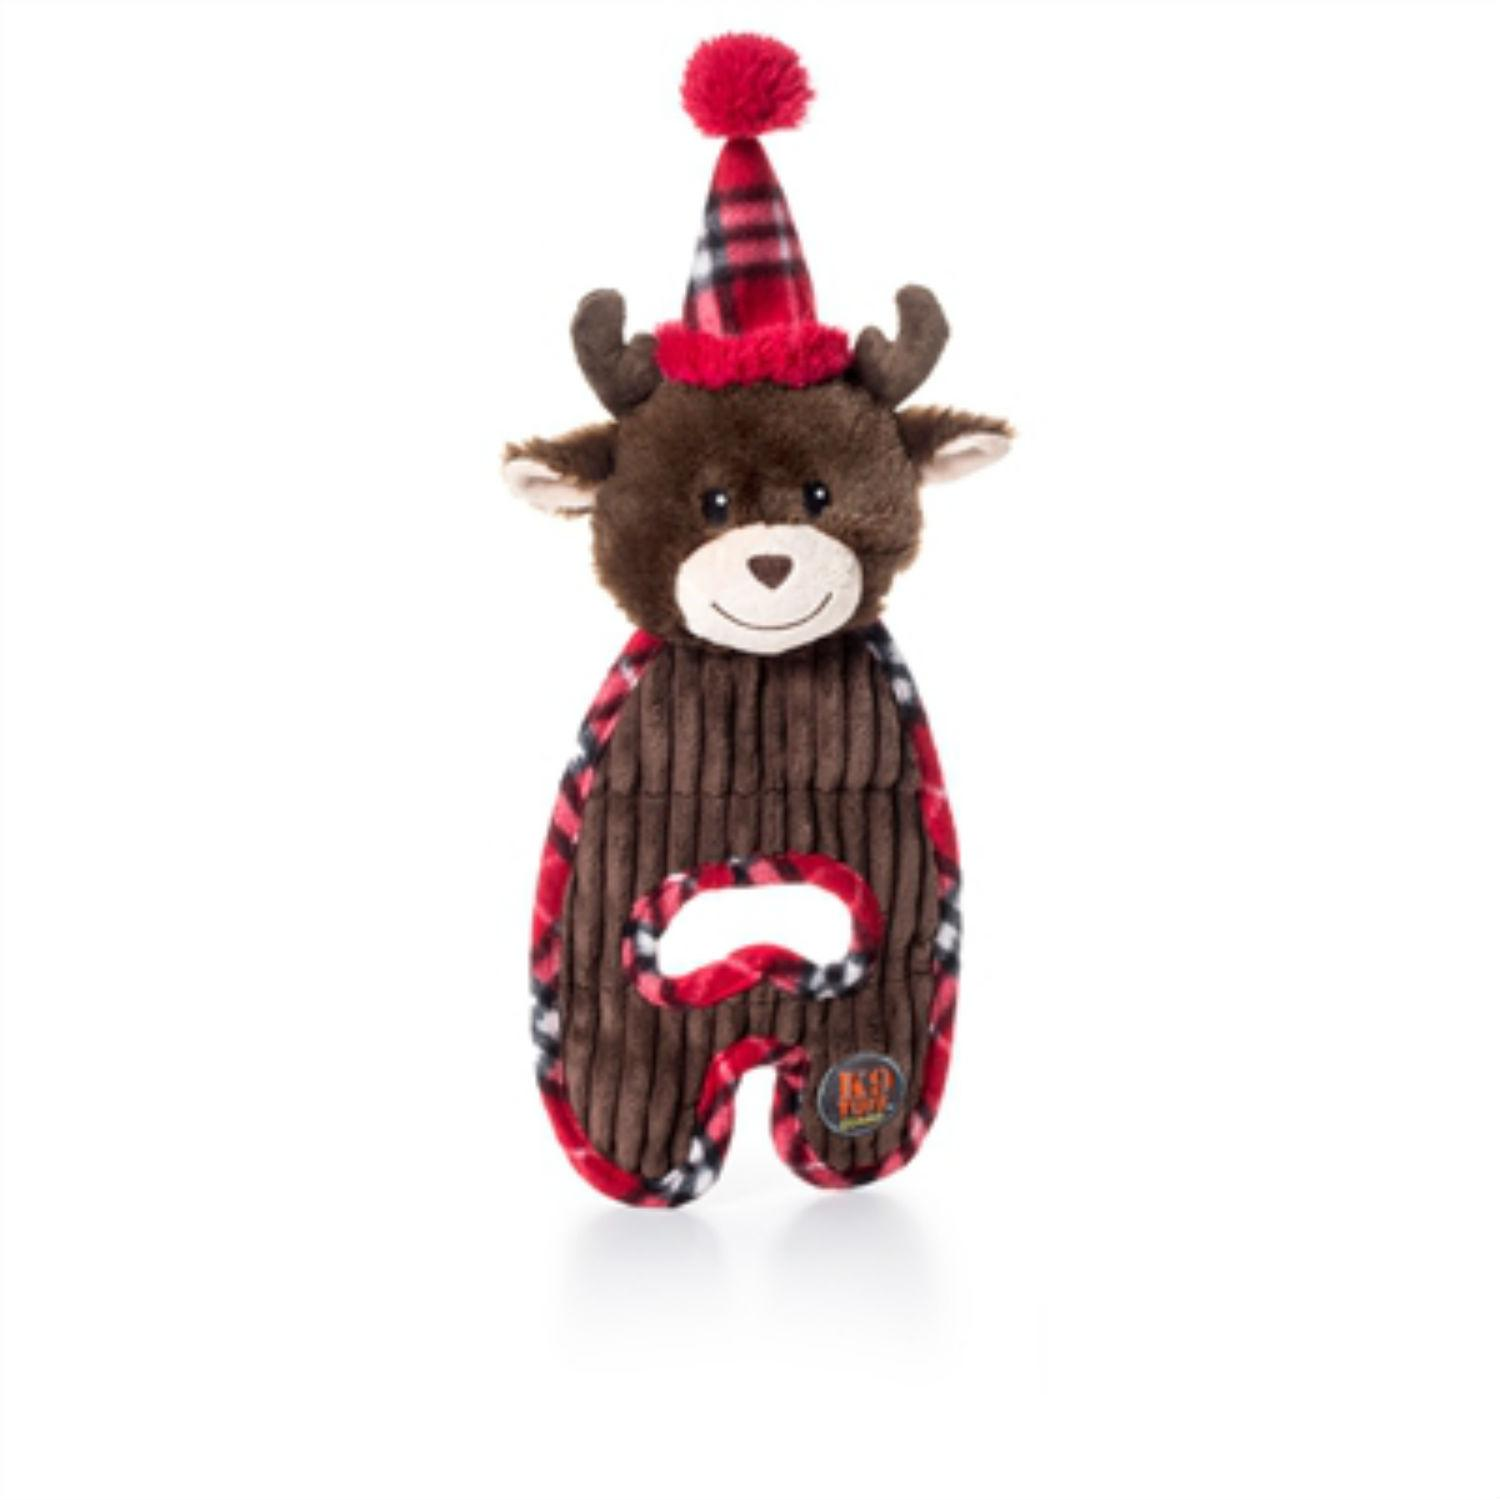 Charming Holiday Cuddle Hugs Dog Toy - Reindeer